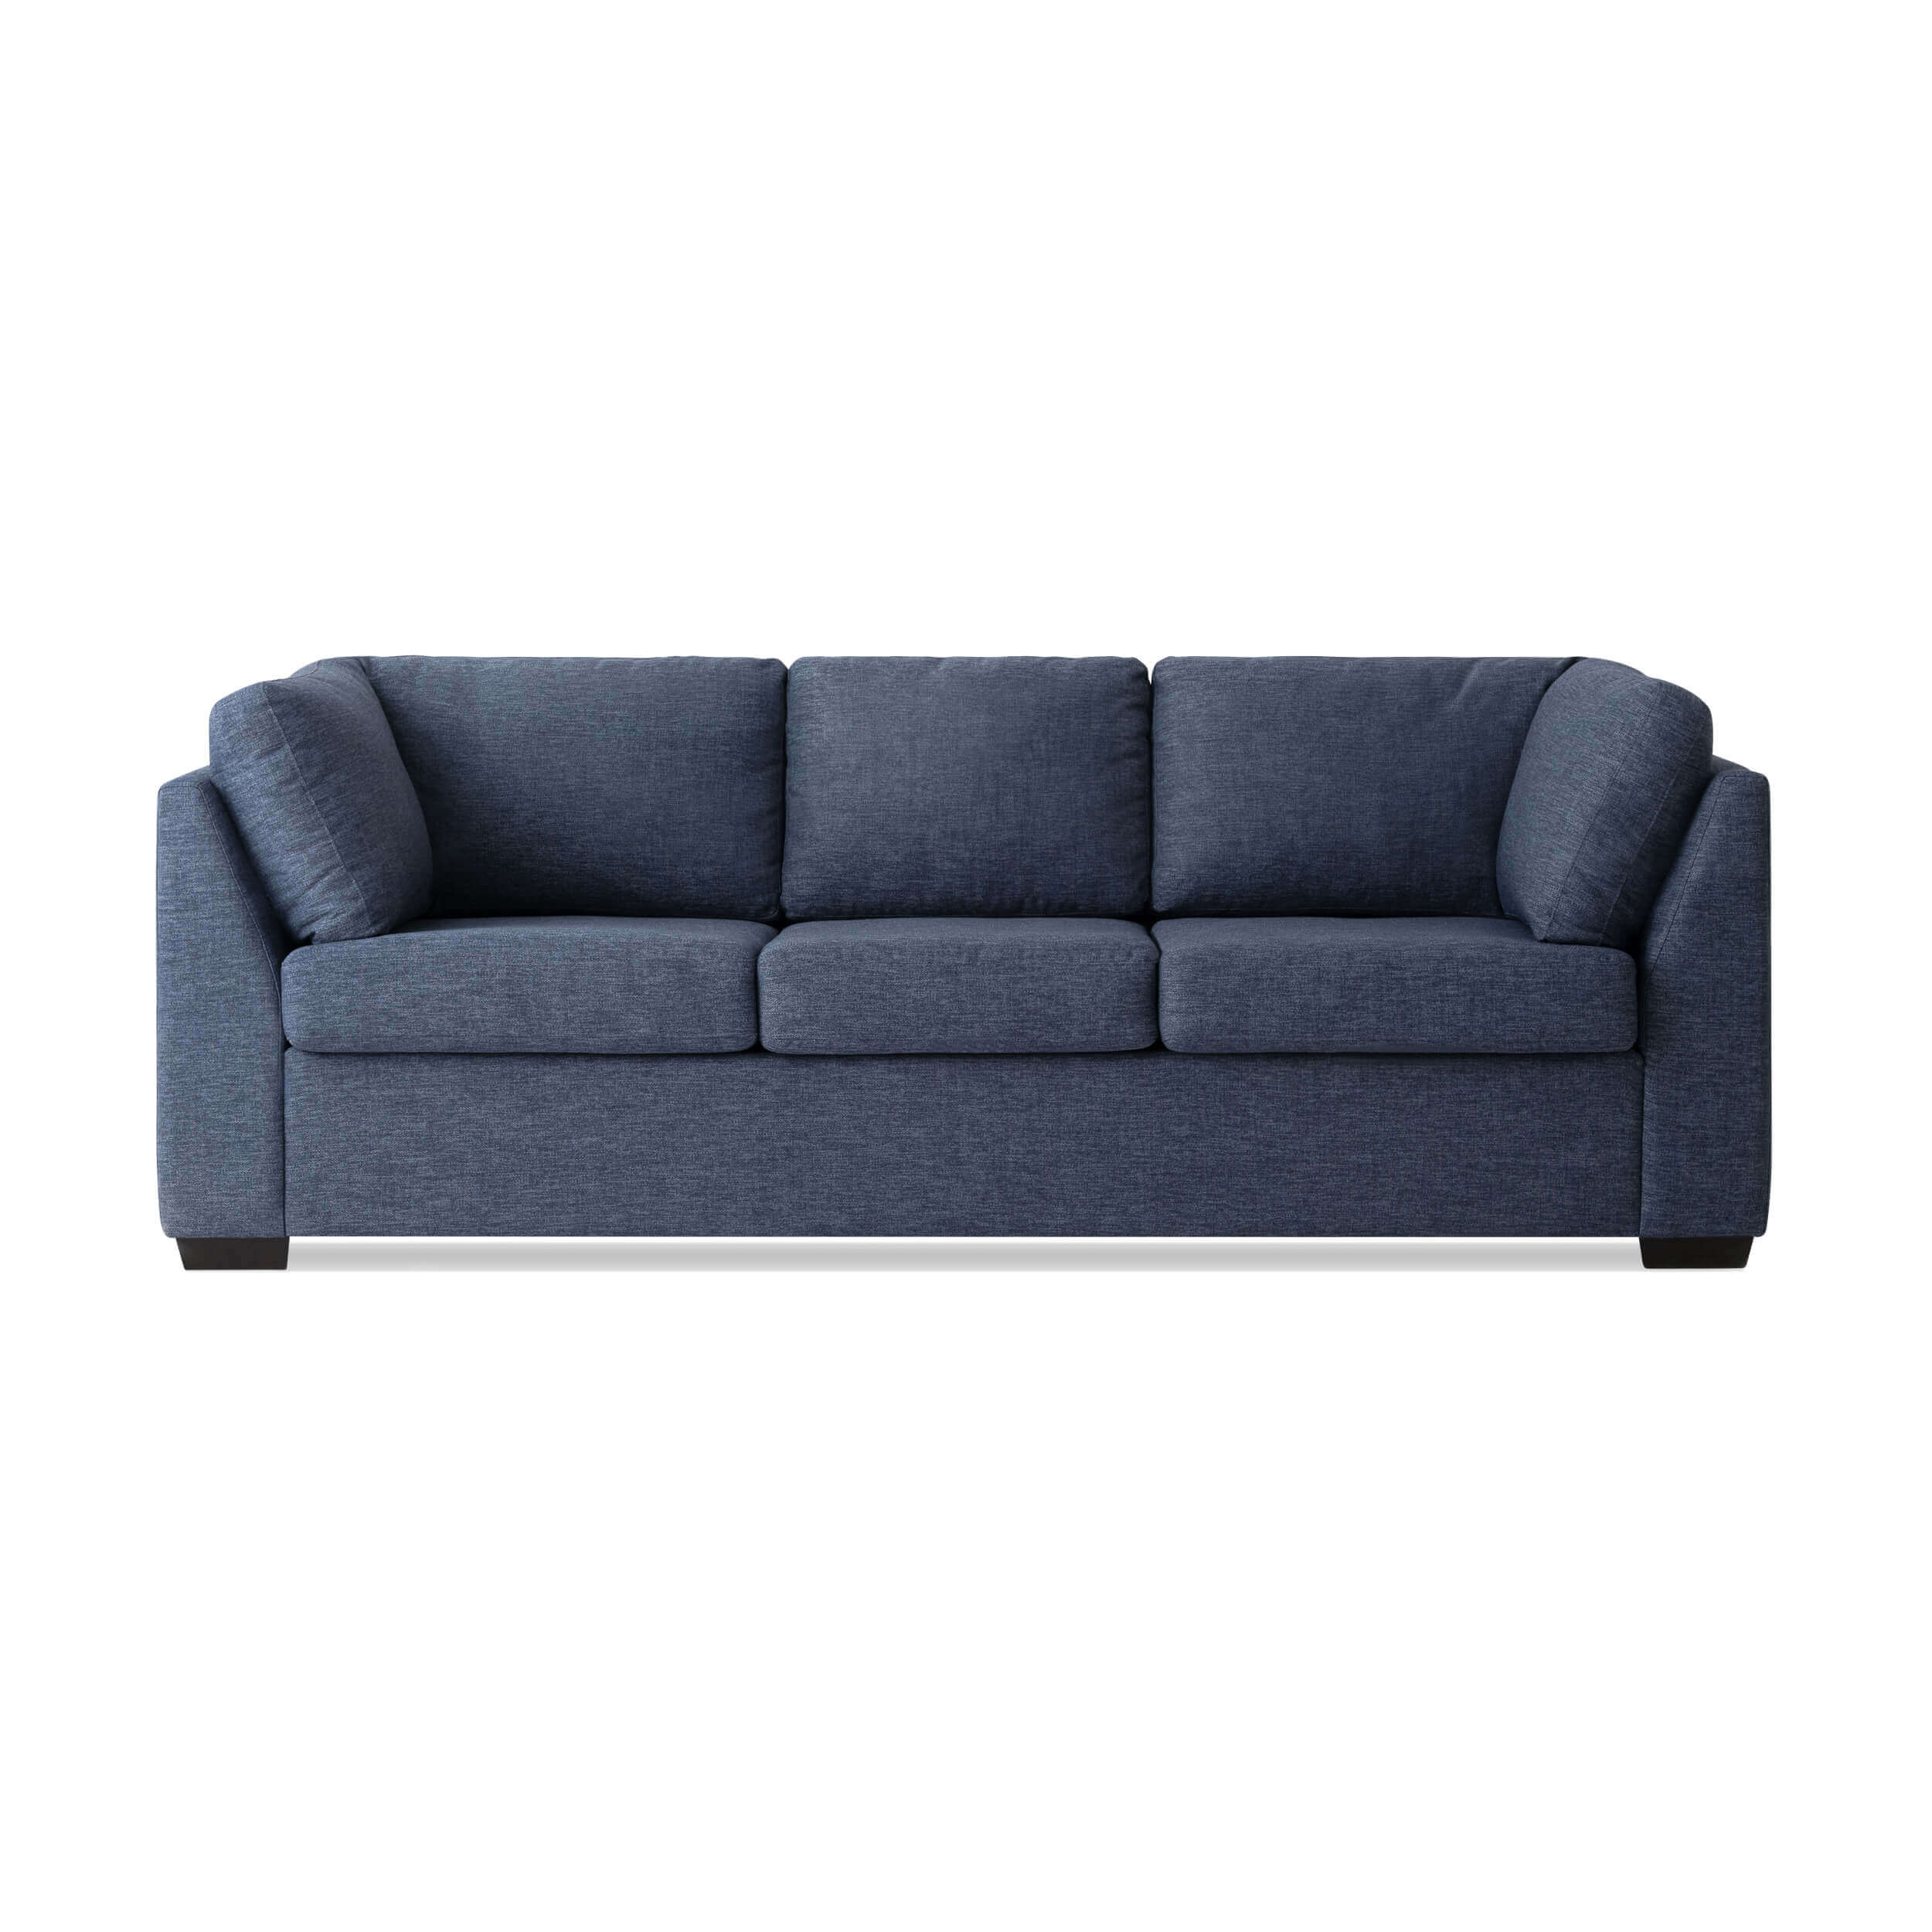 Couches Sleeper Living Seating Sleeper Sofas Eq3